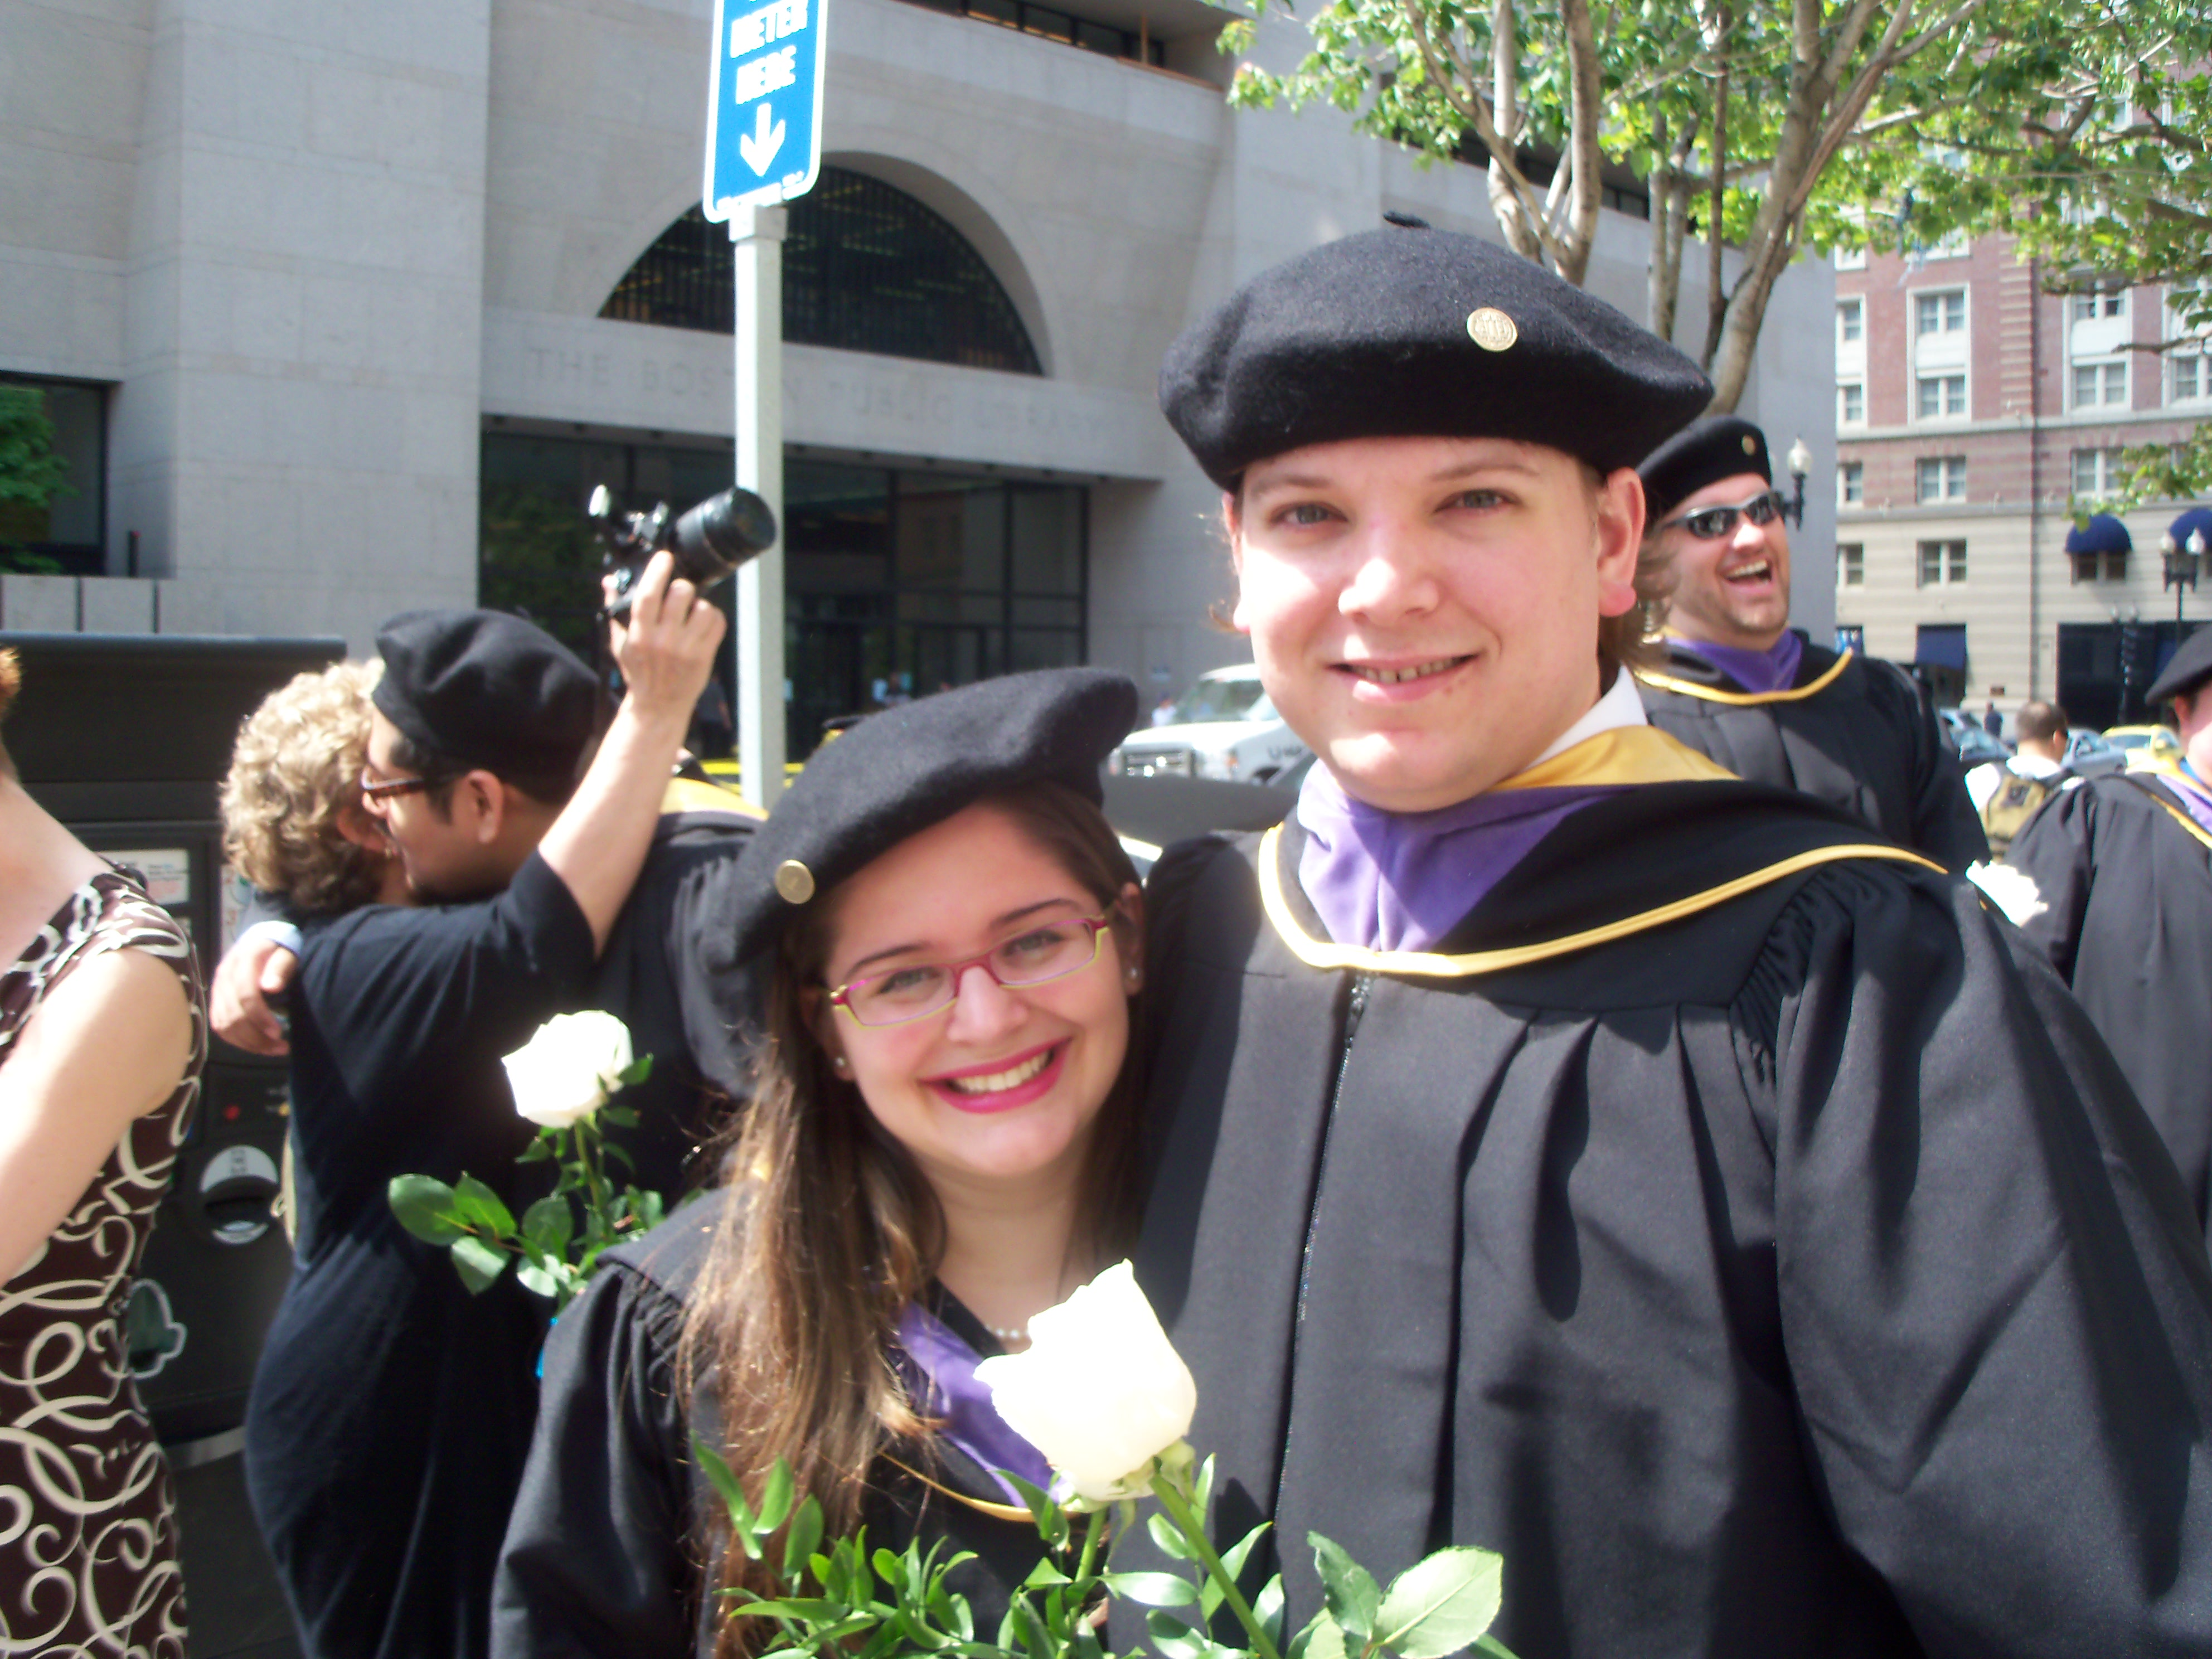 Graduation: Boston Architectural College Commencement Part 1 - I am a Honey  Bee